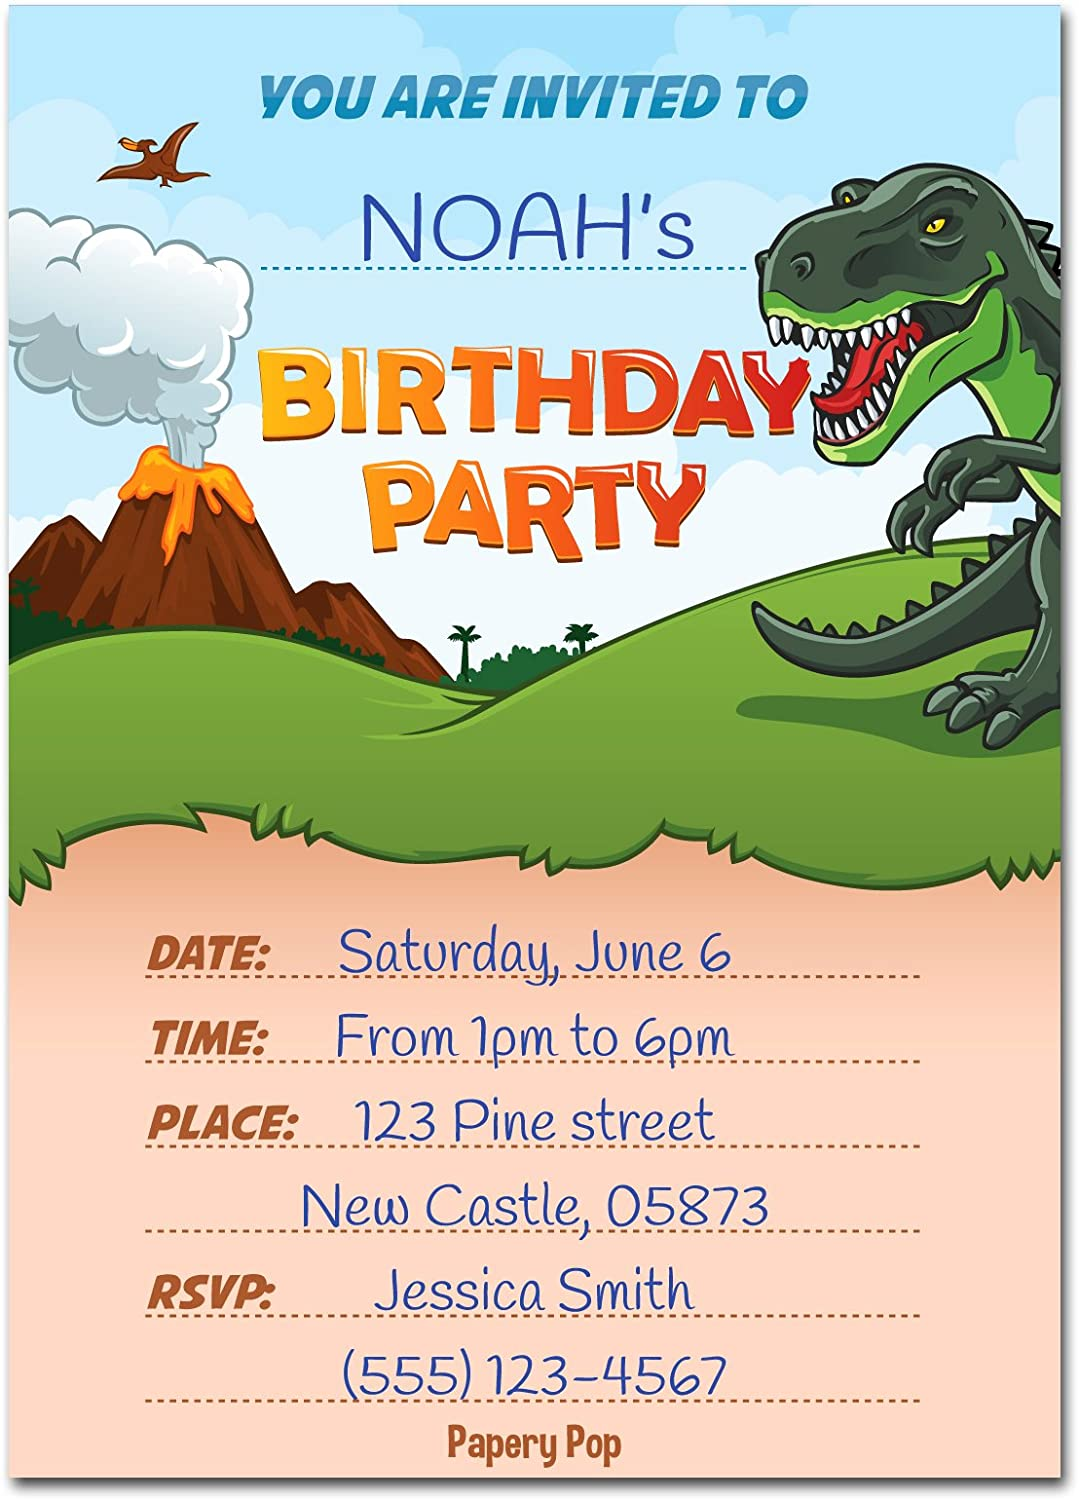 Dinosaur Birthday Invitations with Envelopes 15 Pack Dinosaur Party Decorations Supplies Papery Pop - Kids Birthday Invitations for Boys or Girls